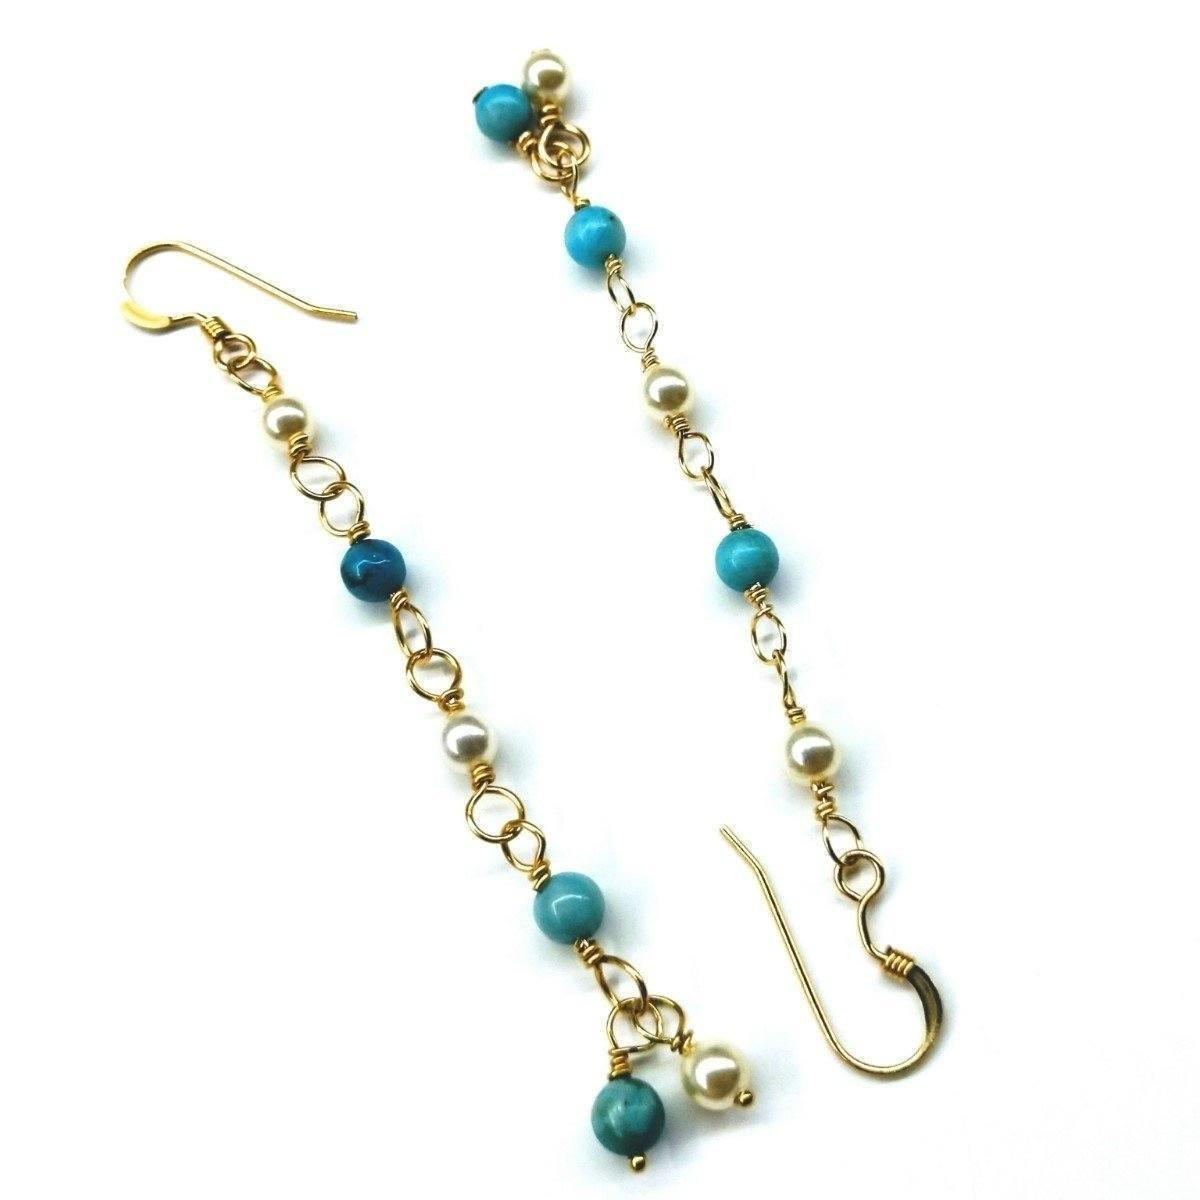 boho chic Beaded Turquoise Earrings bridesmaid jewelry gold plated wire wrapped earrings wire wrapped dangles statement earrings